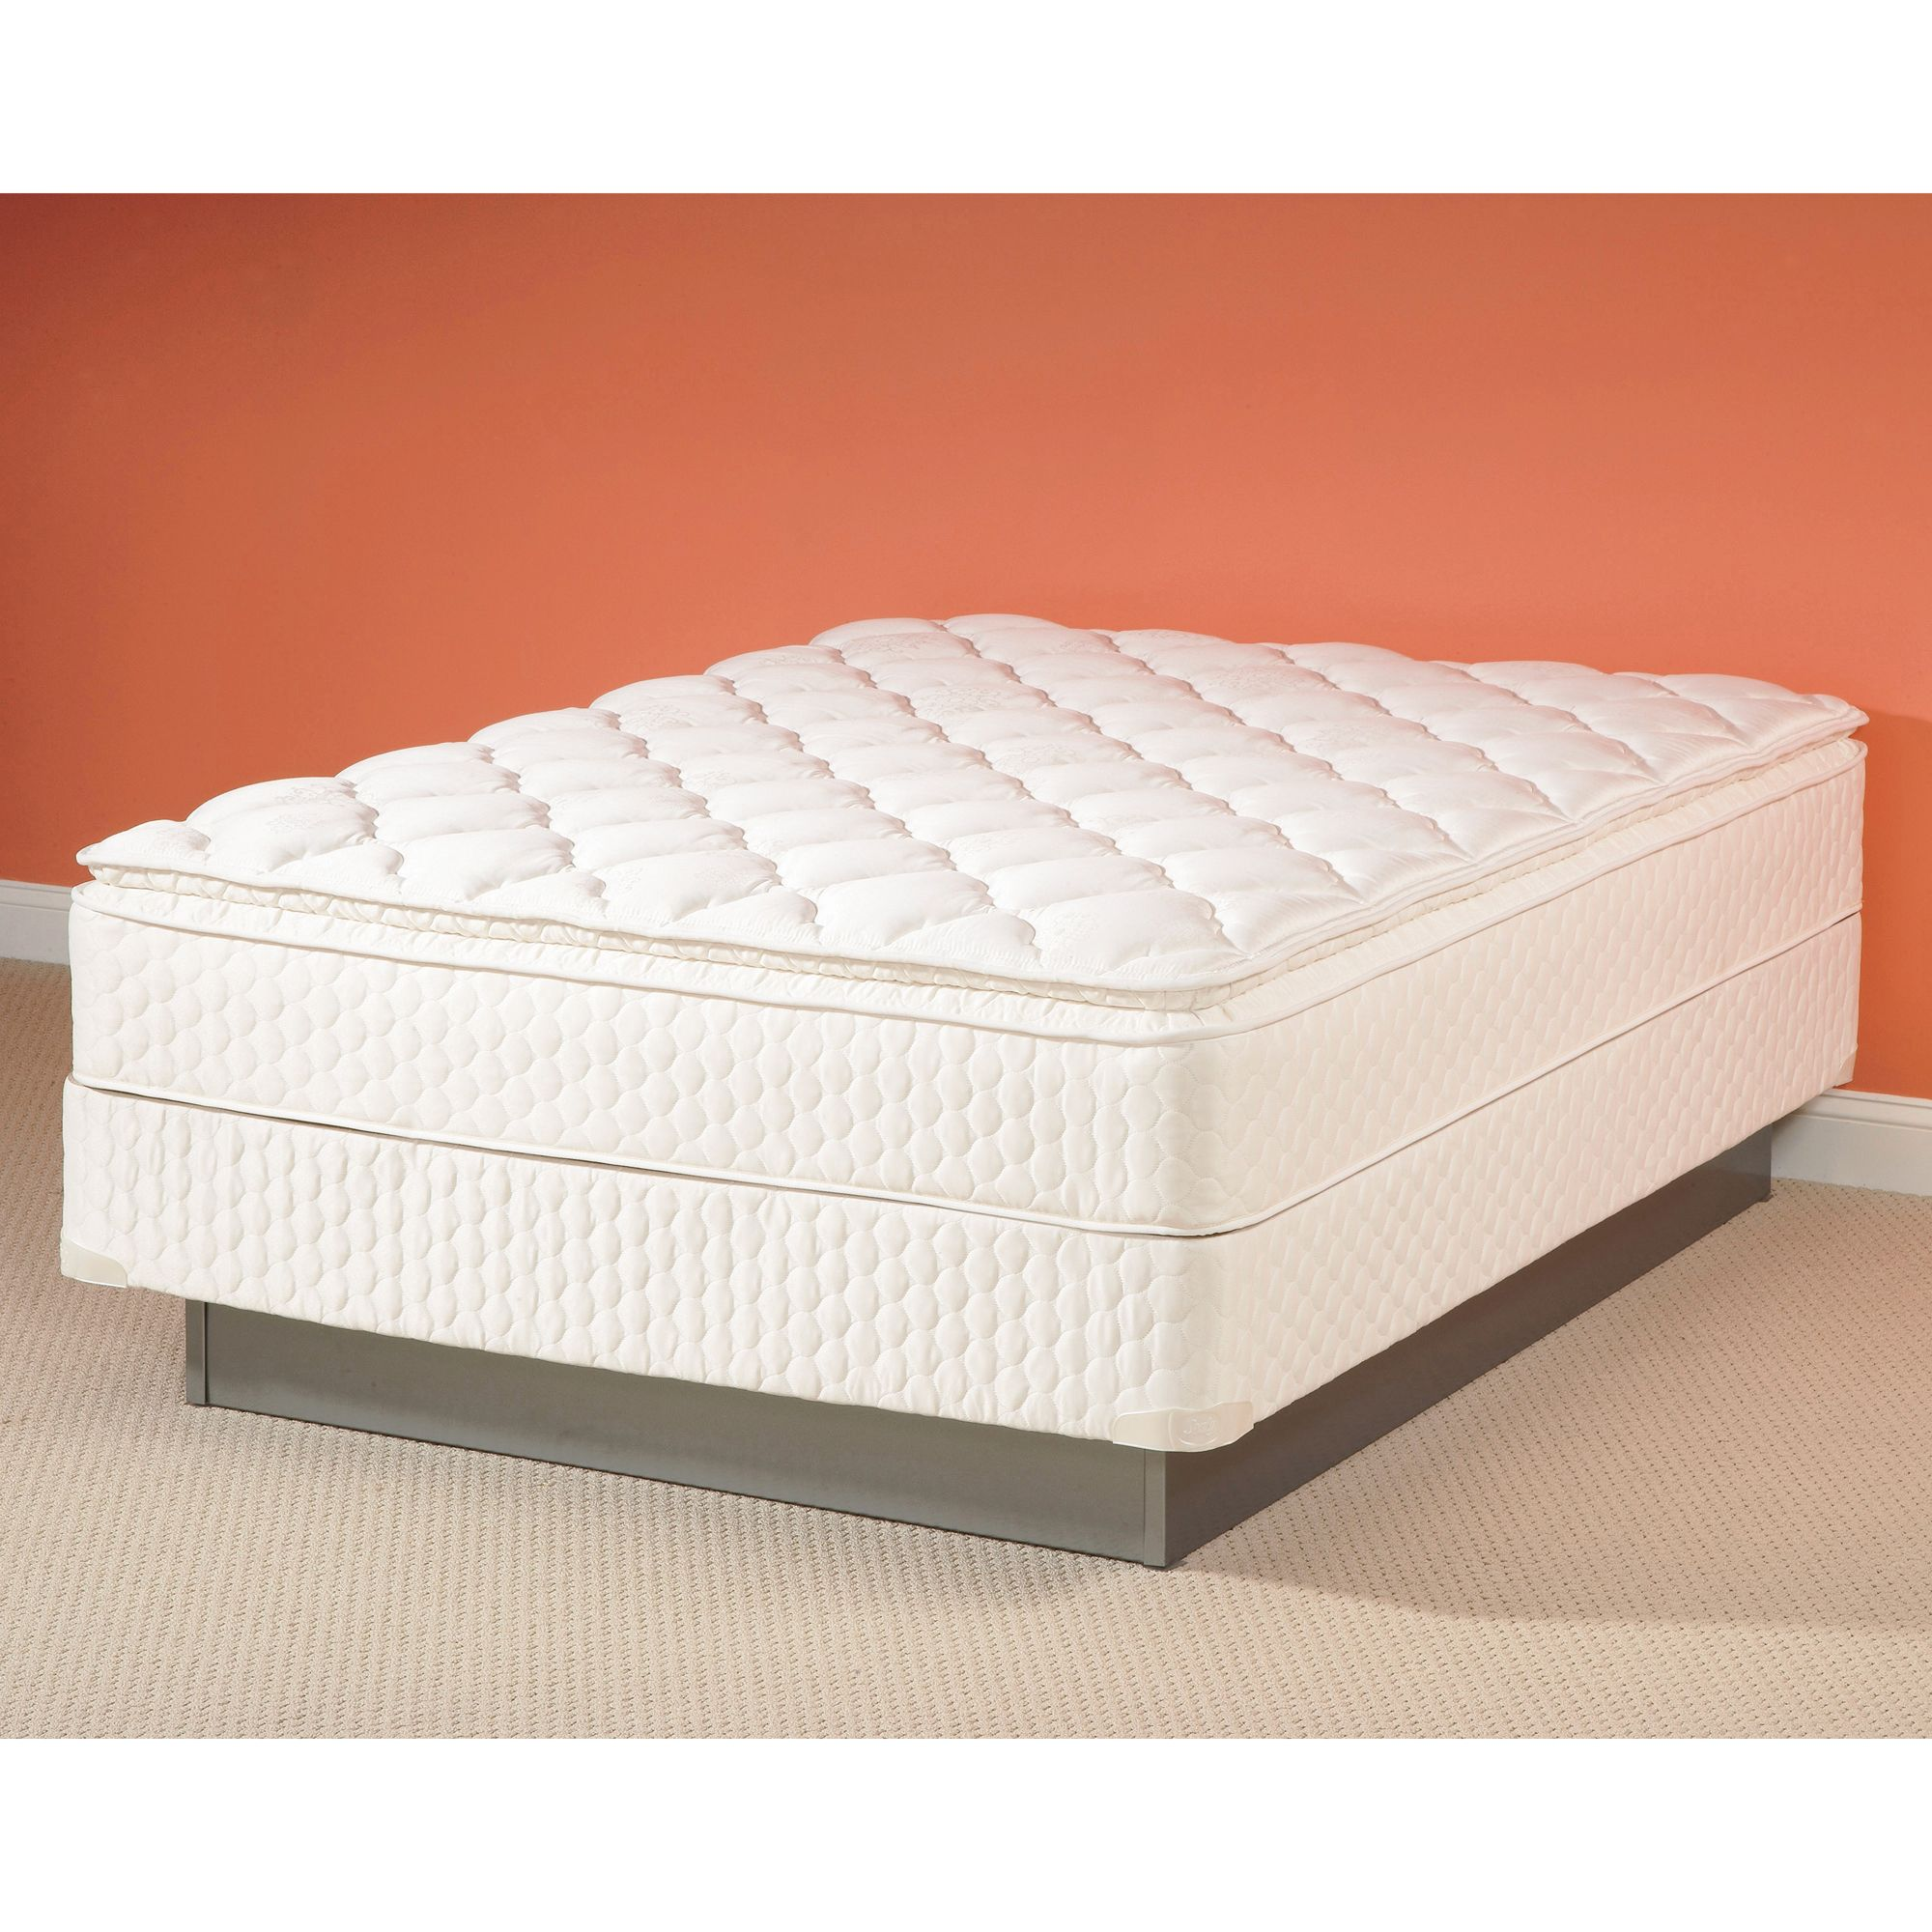 Low Profile Innerspring Mattress Sealy Low Queen Box Spring Sears